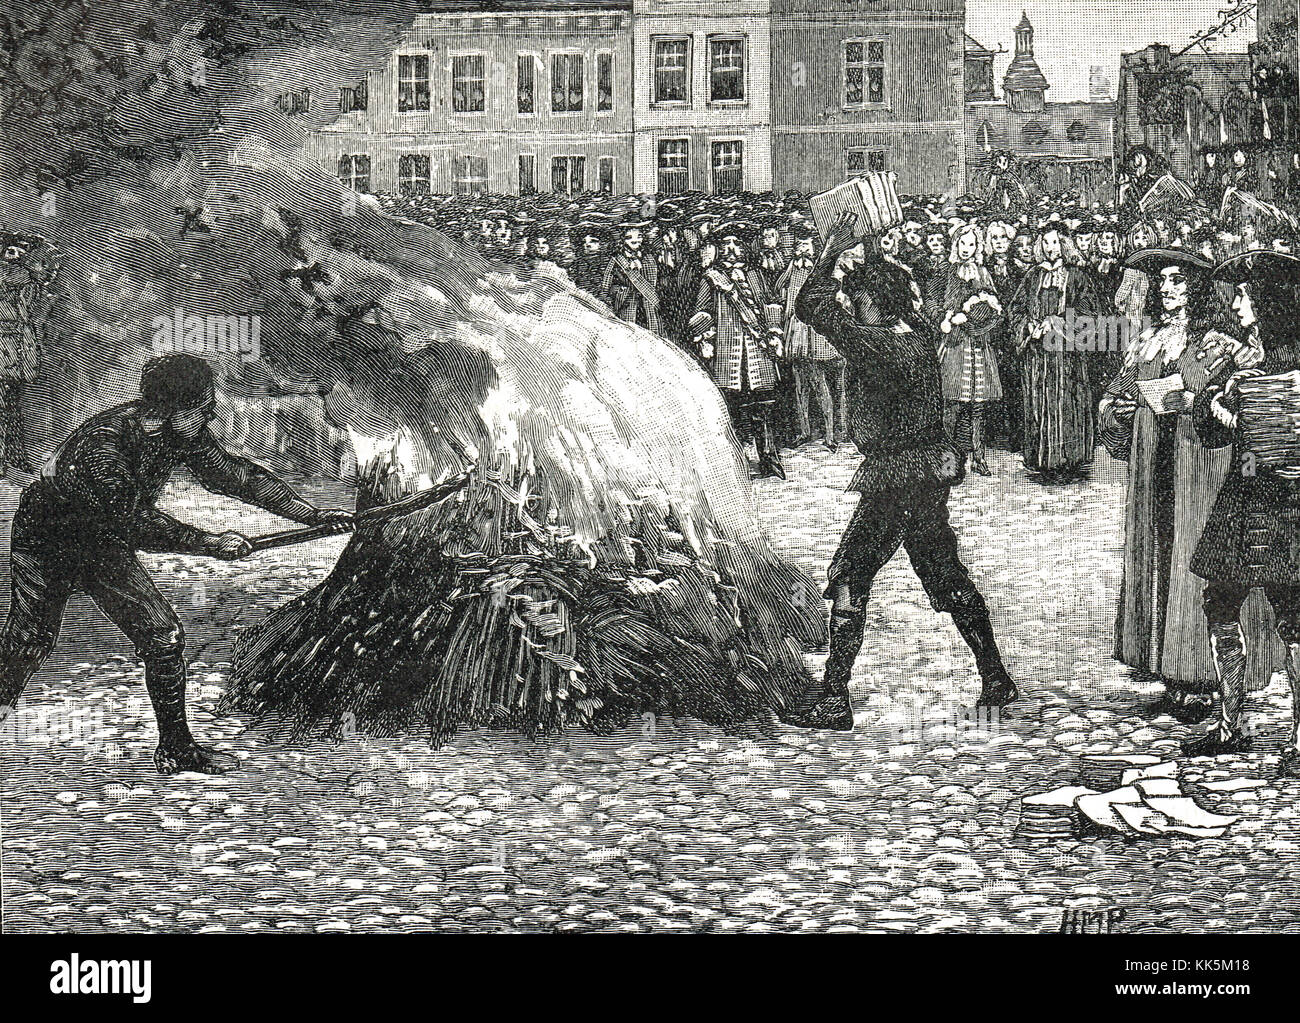 Burning of 'King William and Queen Mary Conquerors' pamphlets by the Common Hangman. A symbolic execution - Stock Image